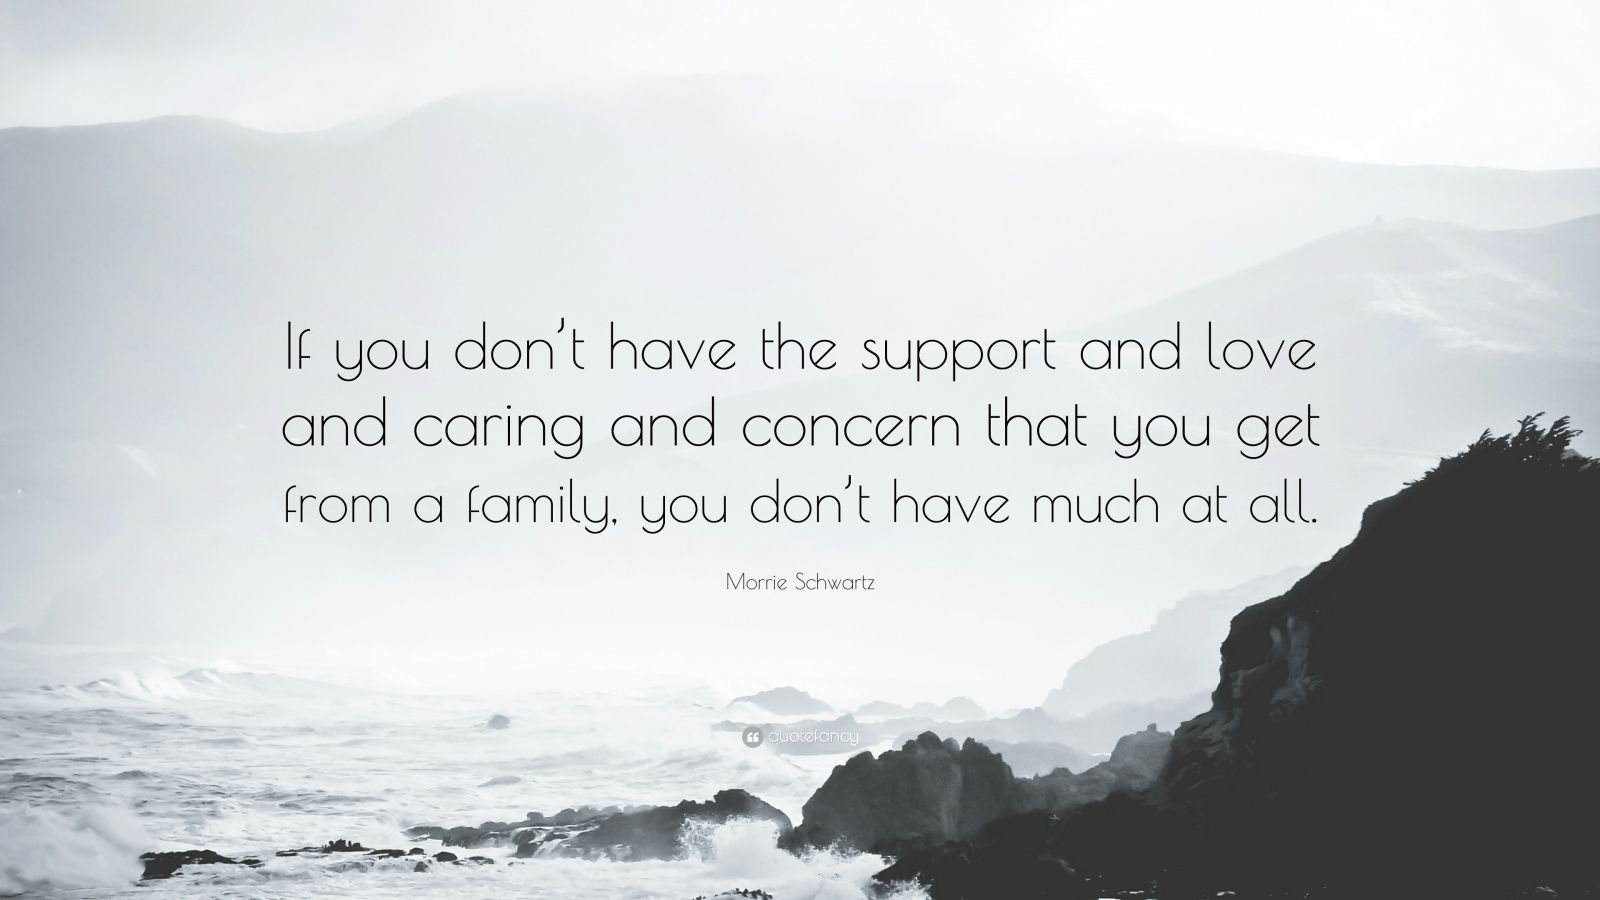 """Morrie Schwartz Quote: """"If you don't have the support and love and caring and concern that you get from a family, you don't have much at all."""""""